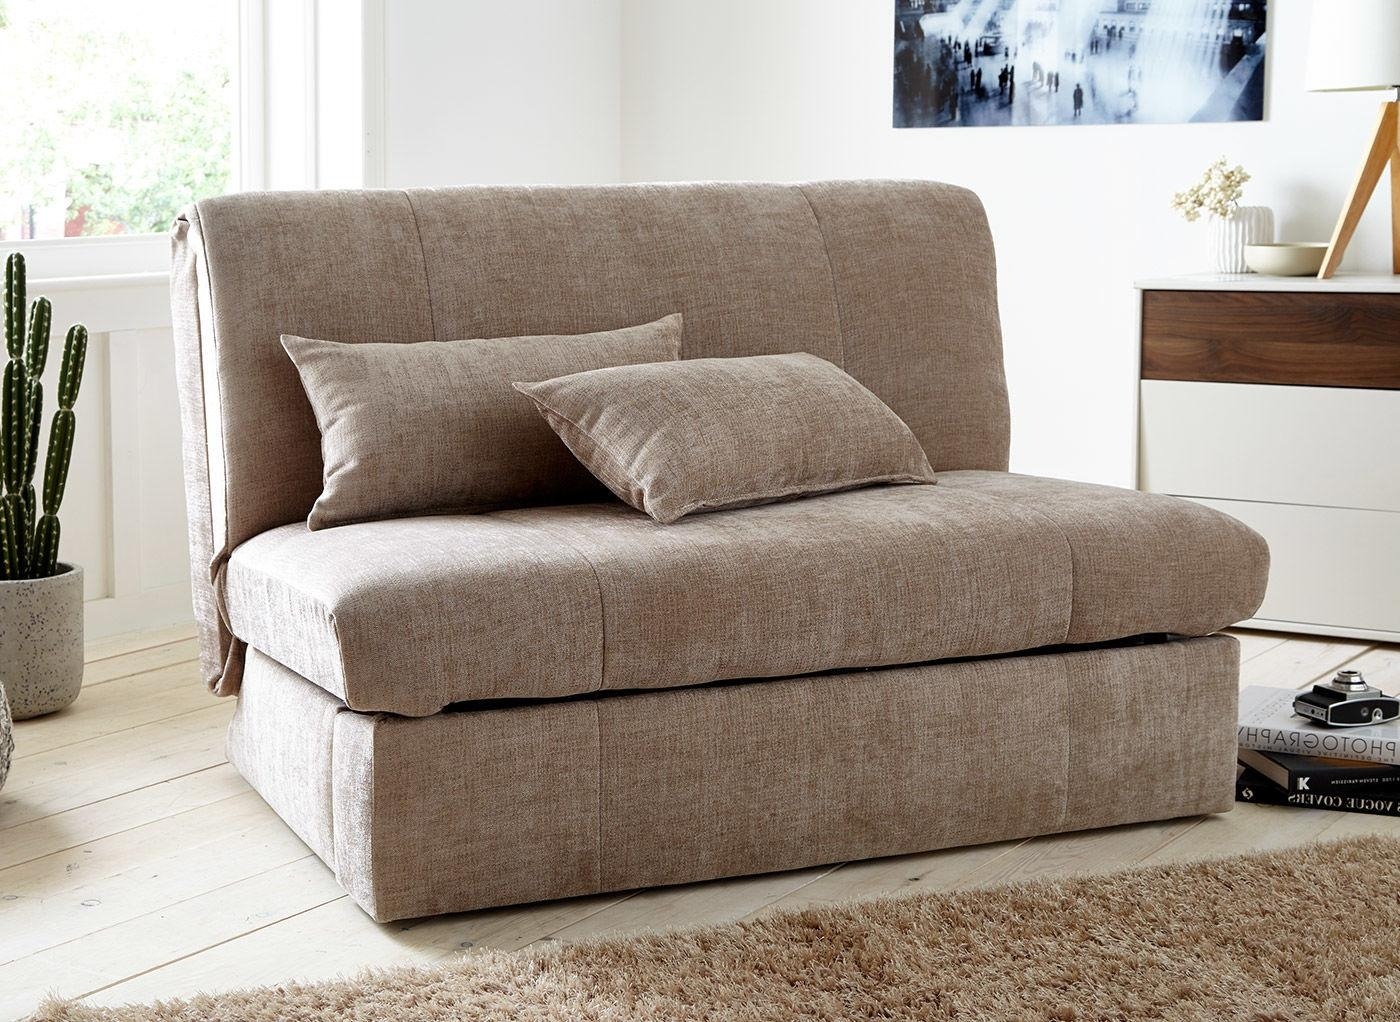 Furniture & Rug: Sofa Trundle | Balkarp Sofa Bed | Sofa Beds Ikea Pertaining To Sofa Beds With Trundle (Image 11 of 20)